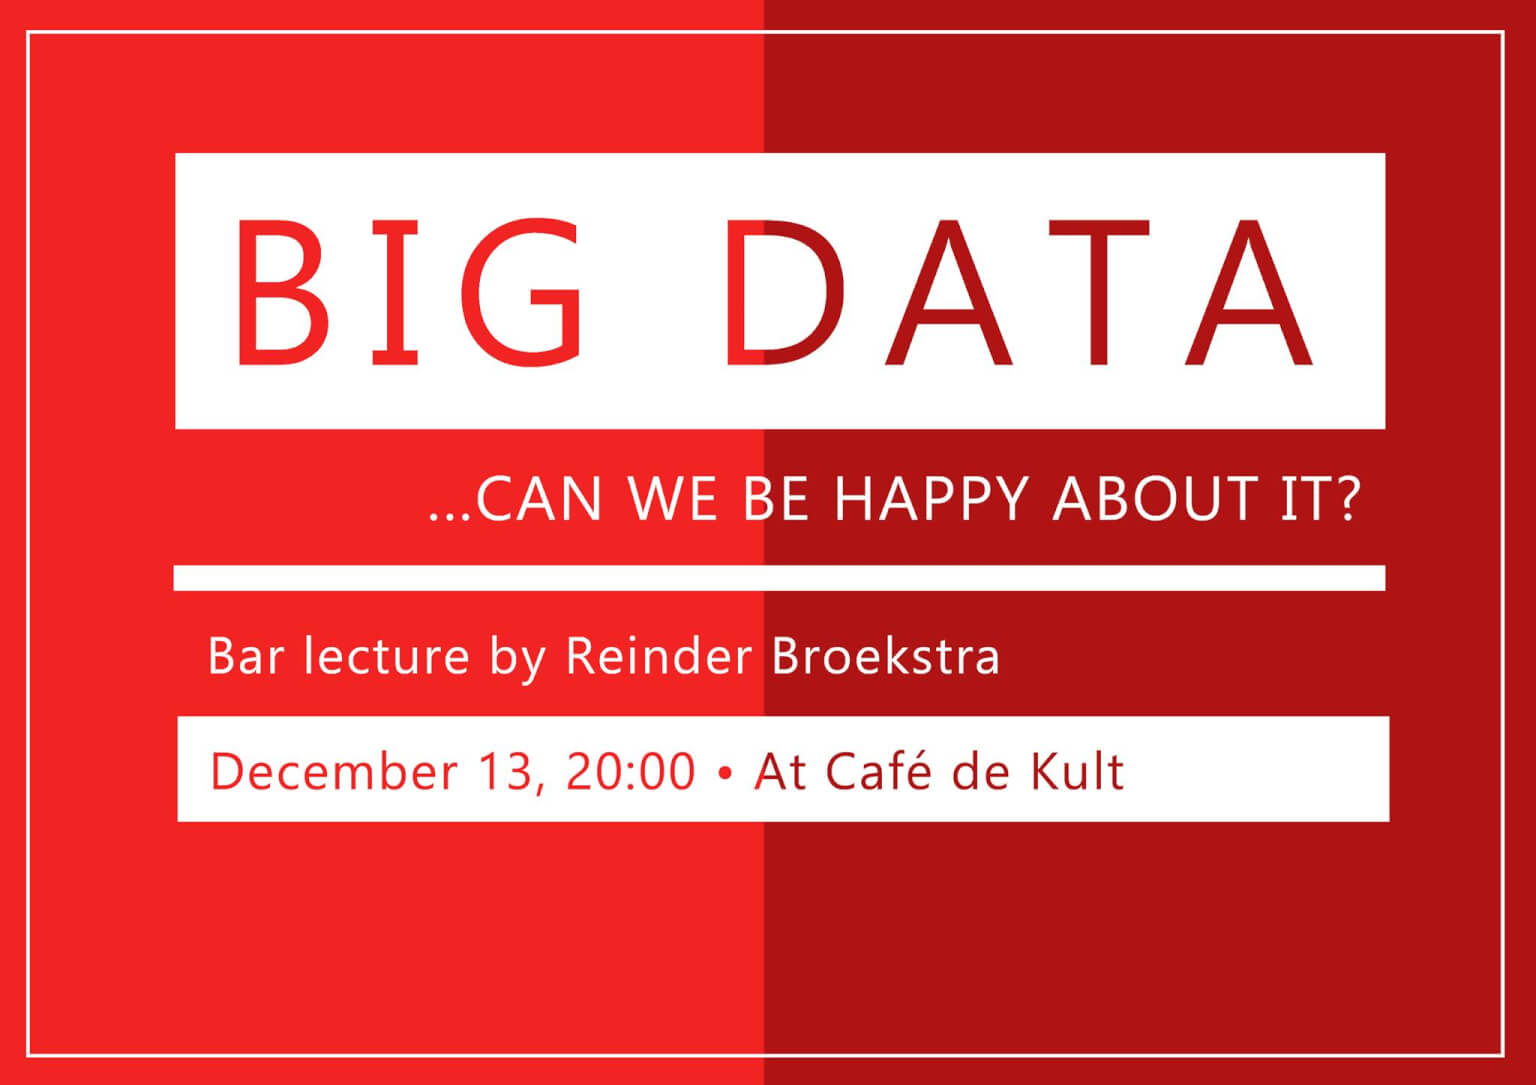 Kroegcollege: The Big Data era, can we be happy about it?